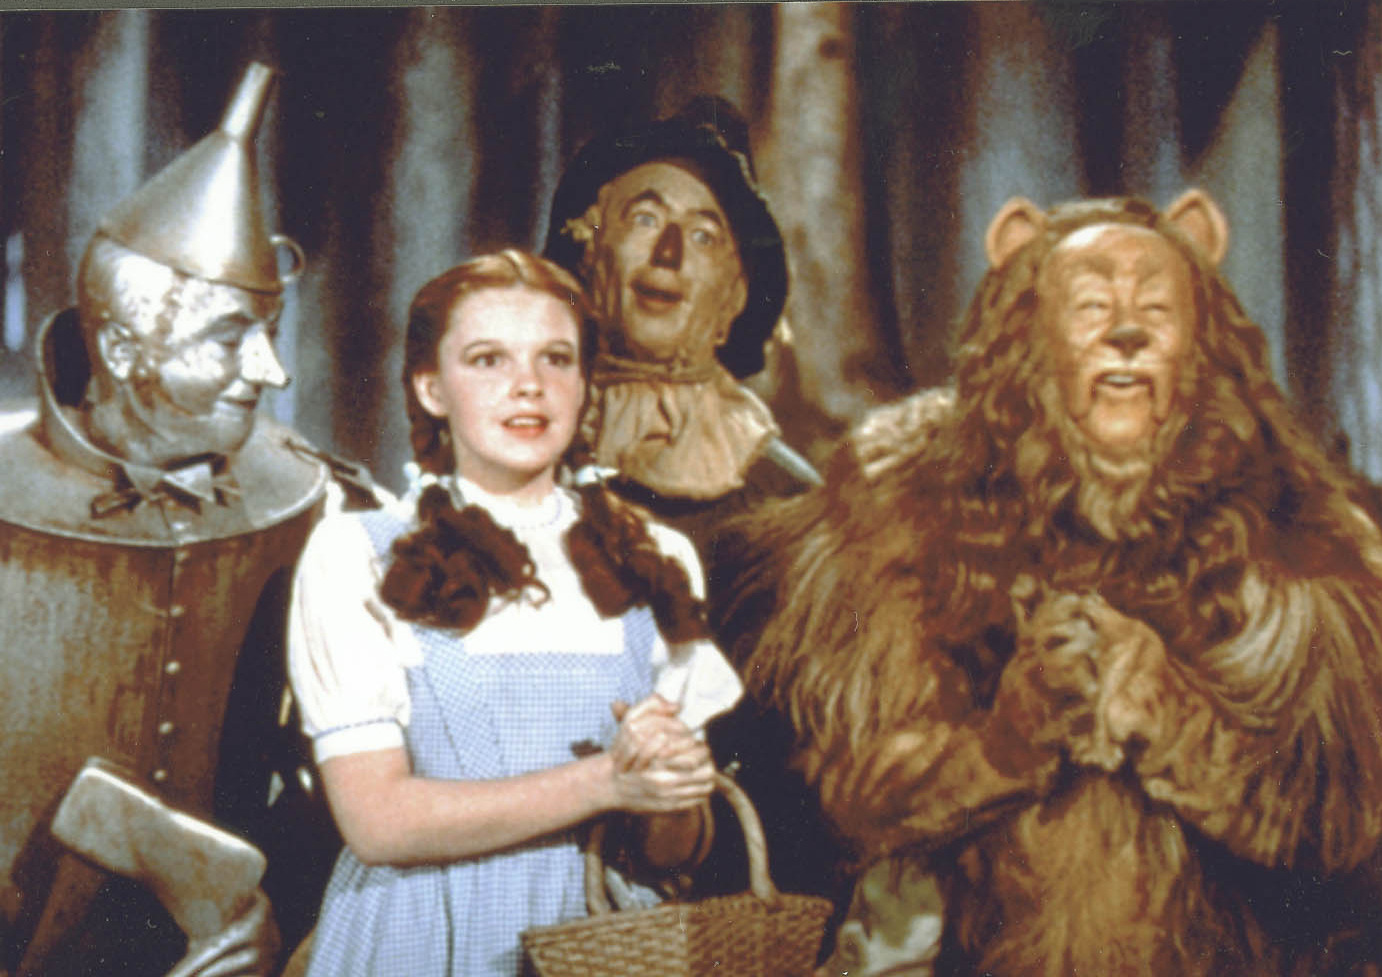 How The Wizard Of Oz Led Judy Garland To Fame And Misery Nz Herald